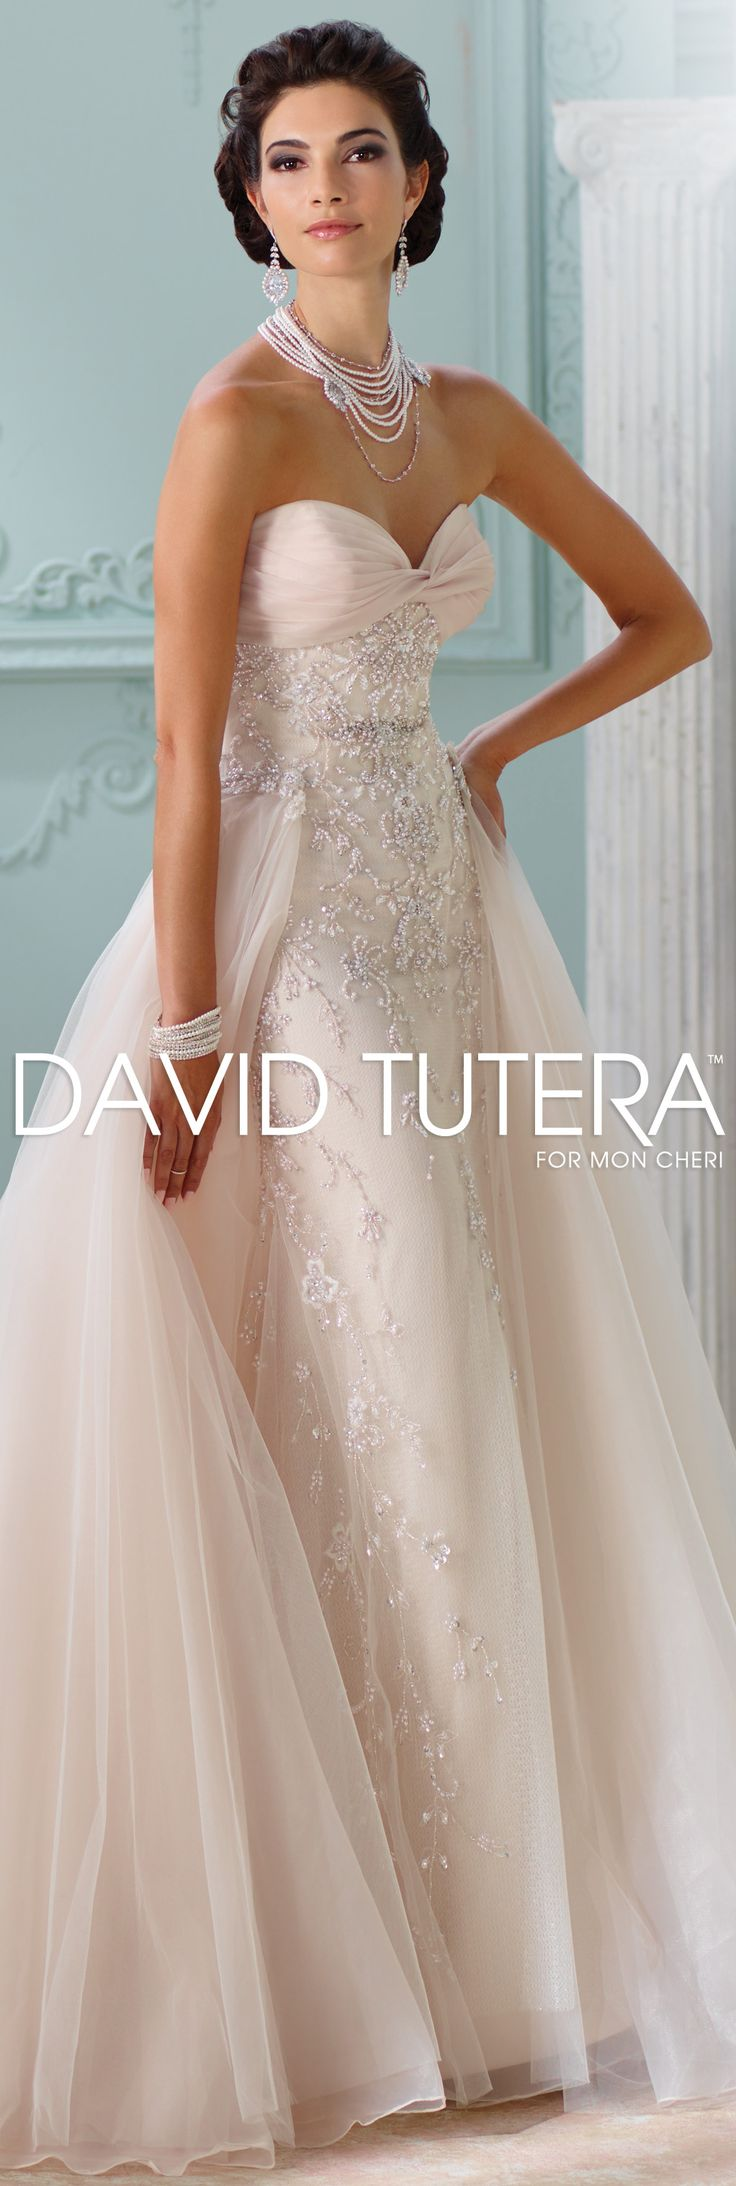 212 best david tutera wedding dresses images on pinterest for David tutera wedding jewelry collection